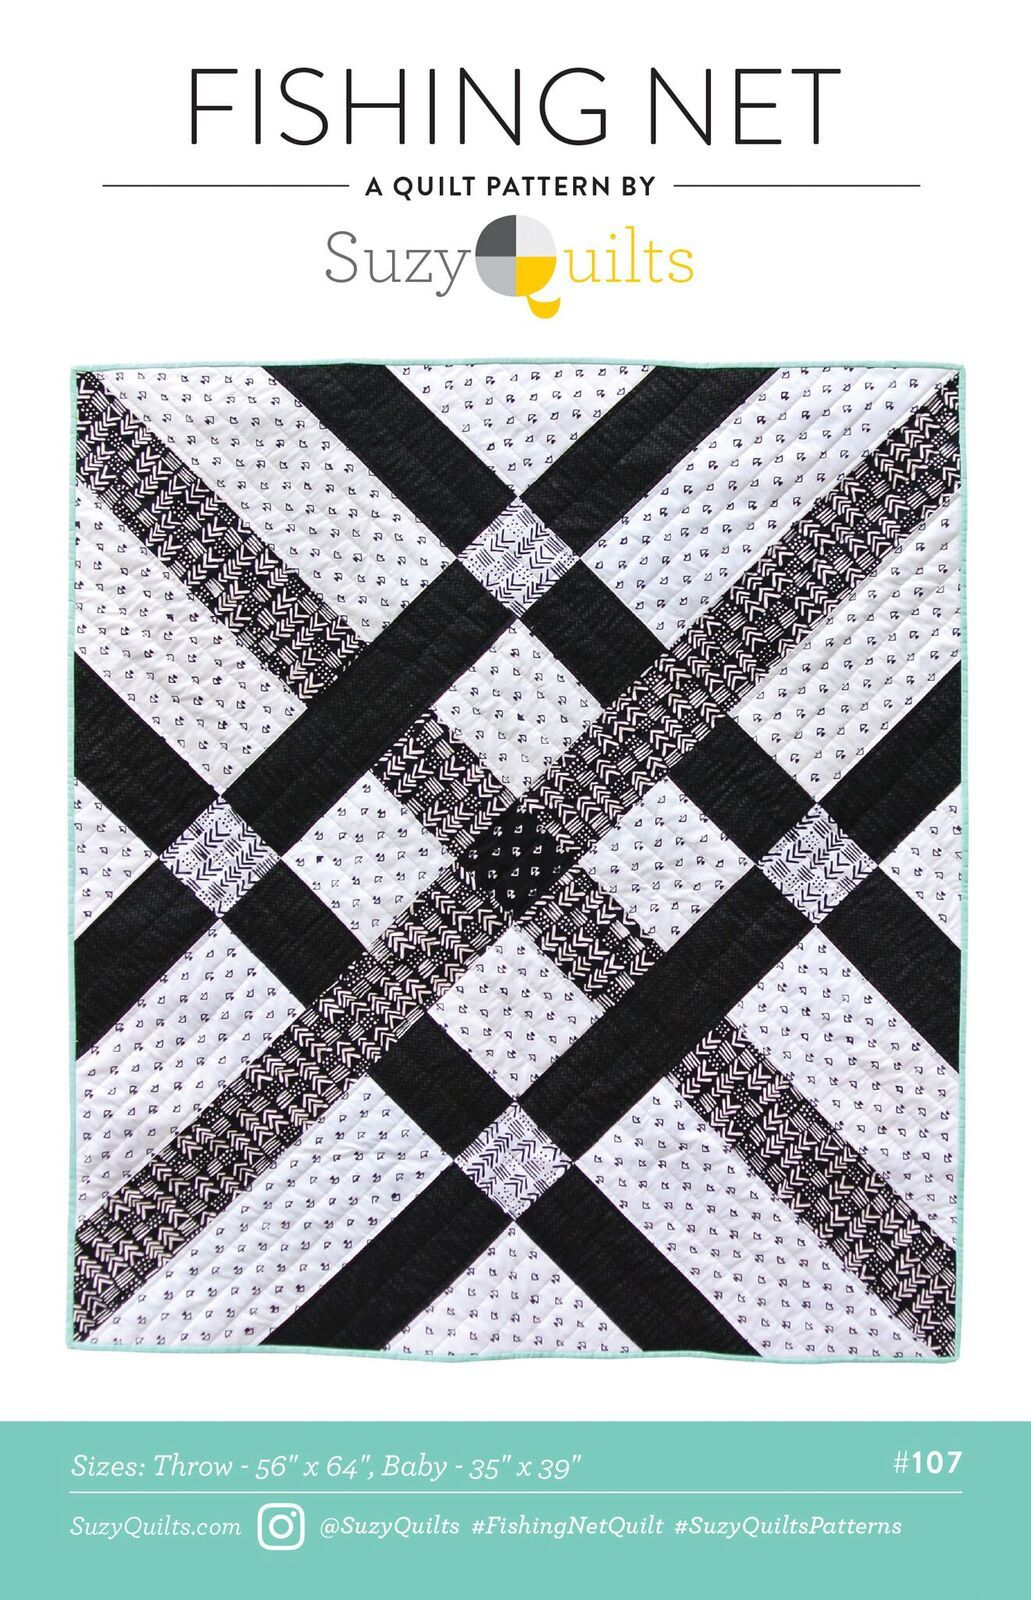 suzy quilts fishing net sewing pattern